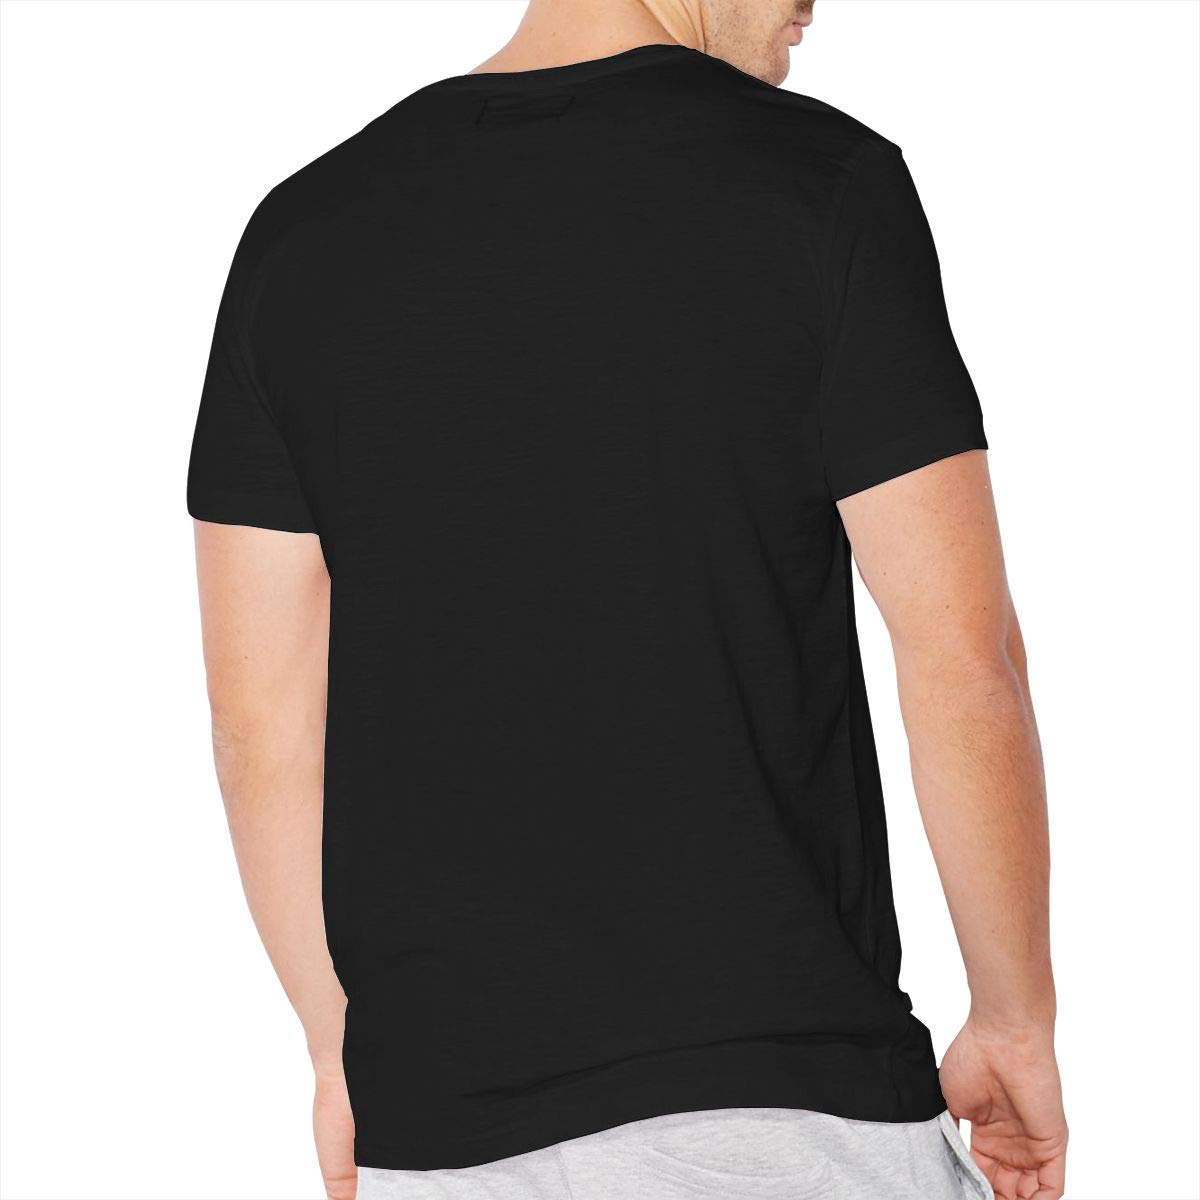 Mens Daddy Its Just Poop Be A Man Get in There Classic Comfortable Short-Sleeve Crewneck Cotton T-Shirt Black